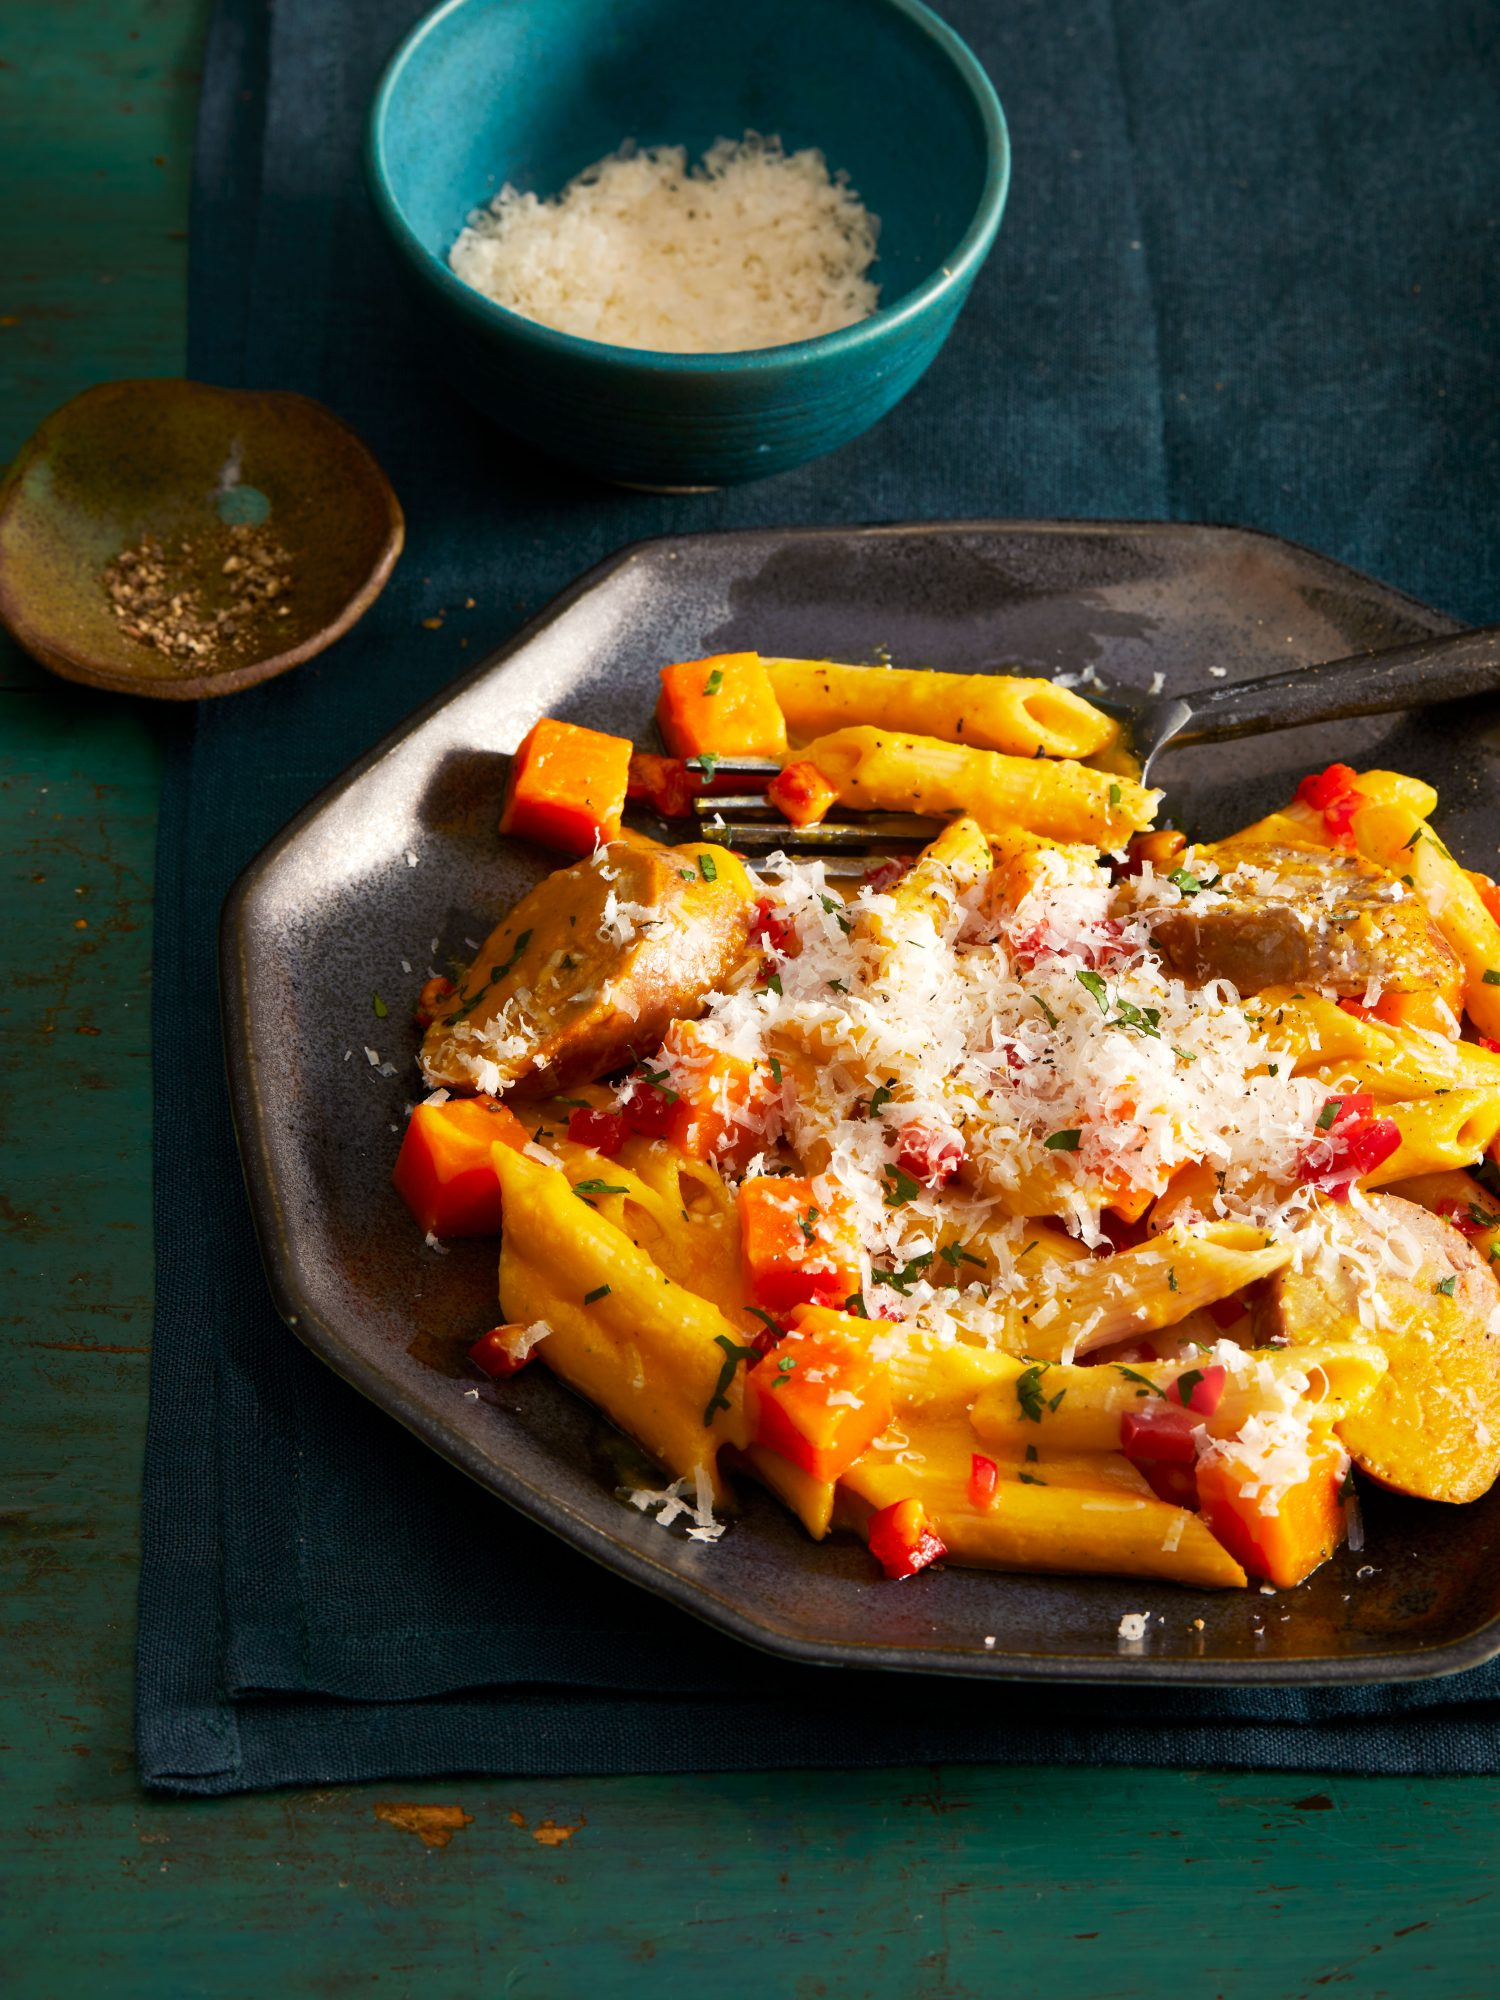 Penne with Squash and Italian Chicken Sausage